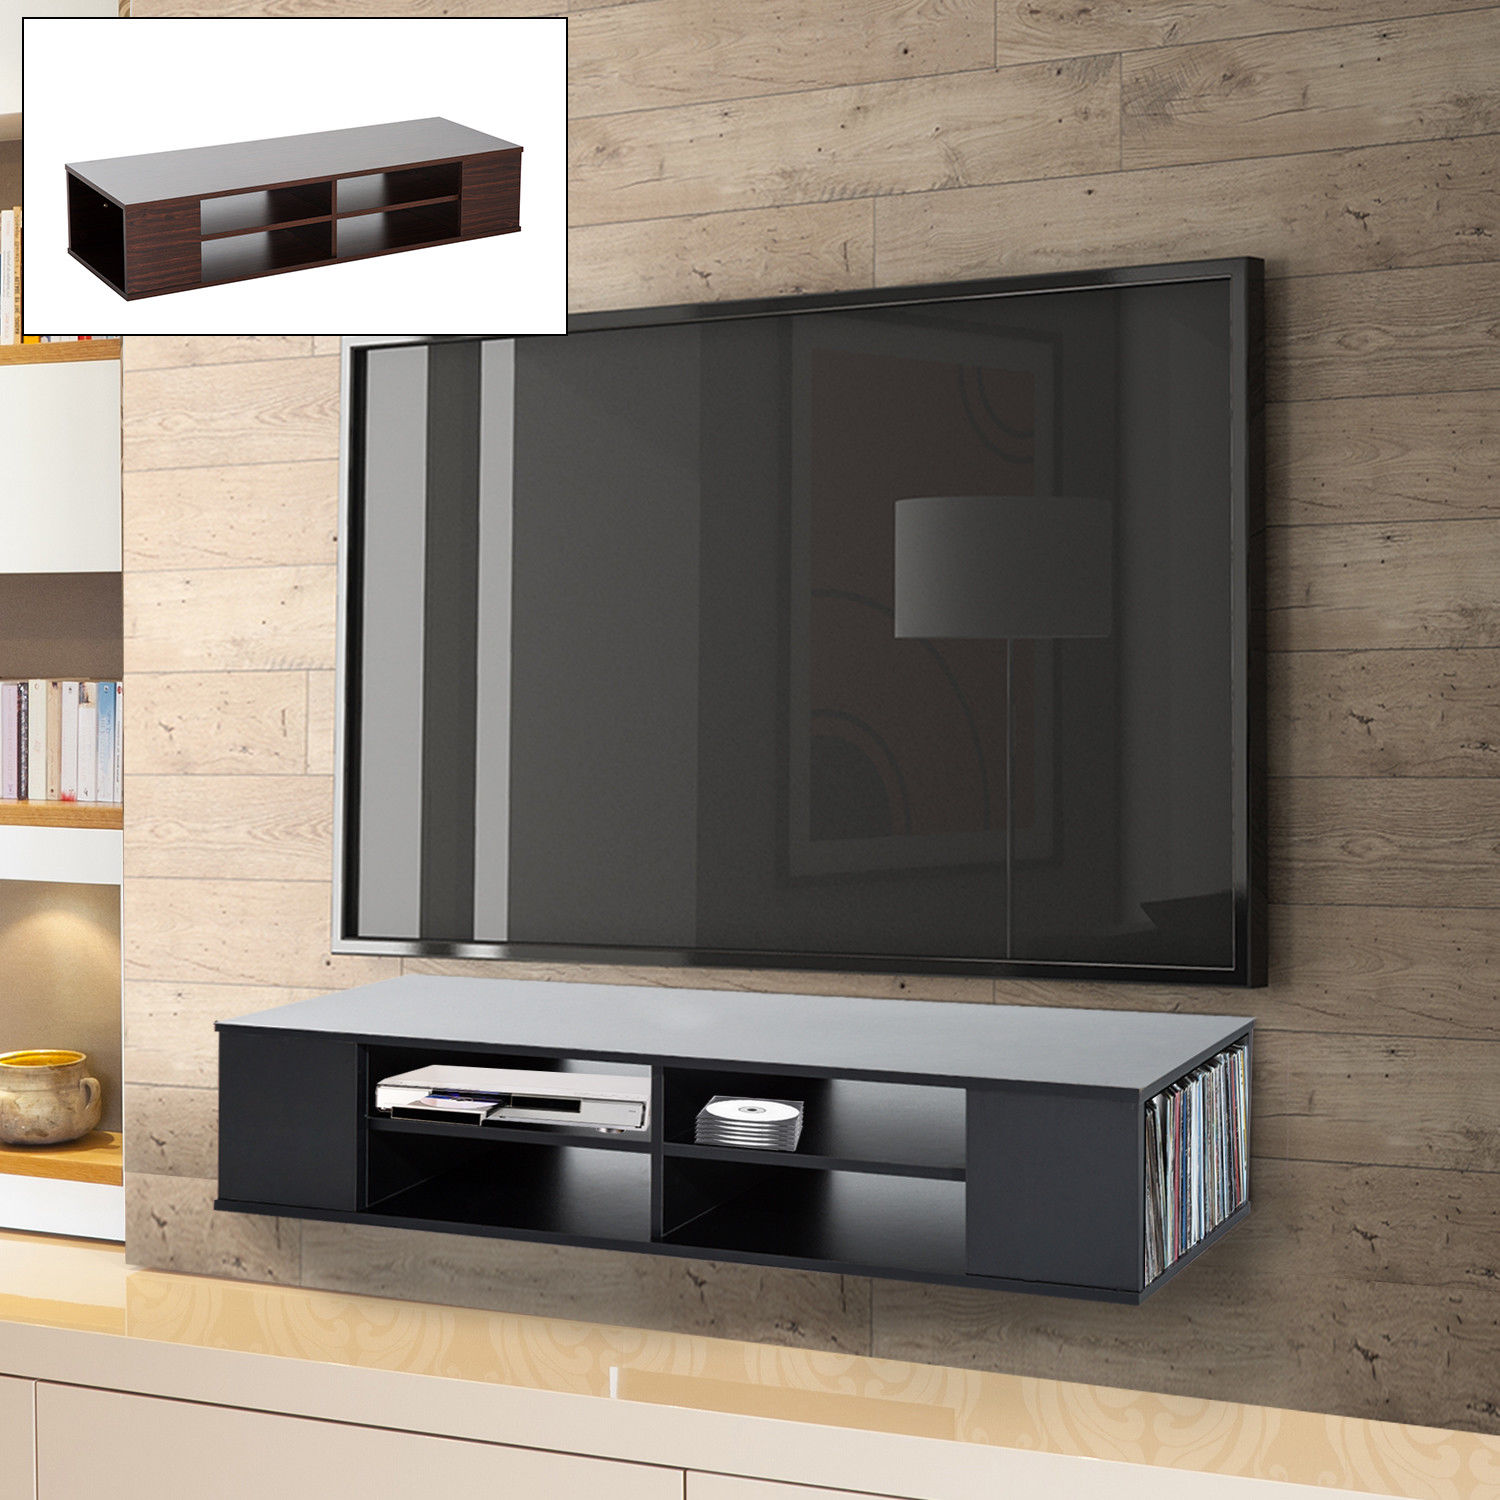 Modern 47 Floating Wall Mounted TV Stand Unit Cabinet